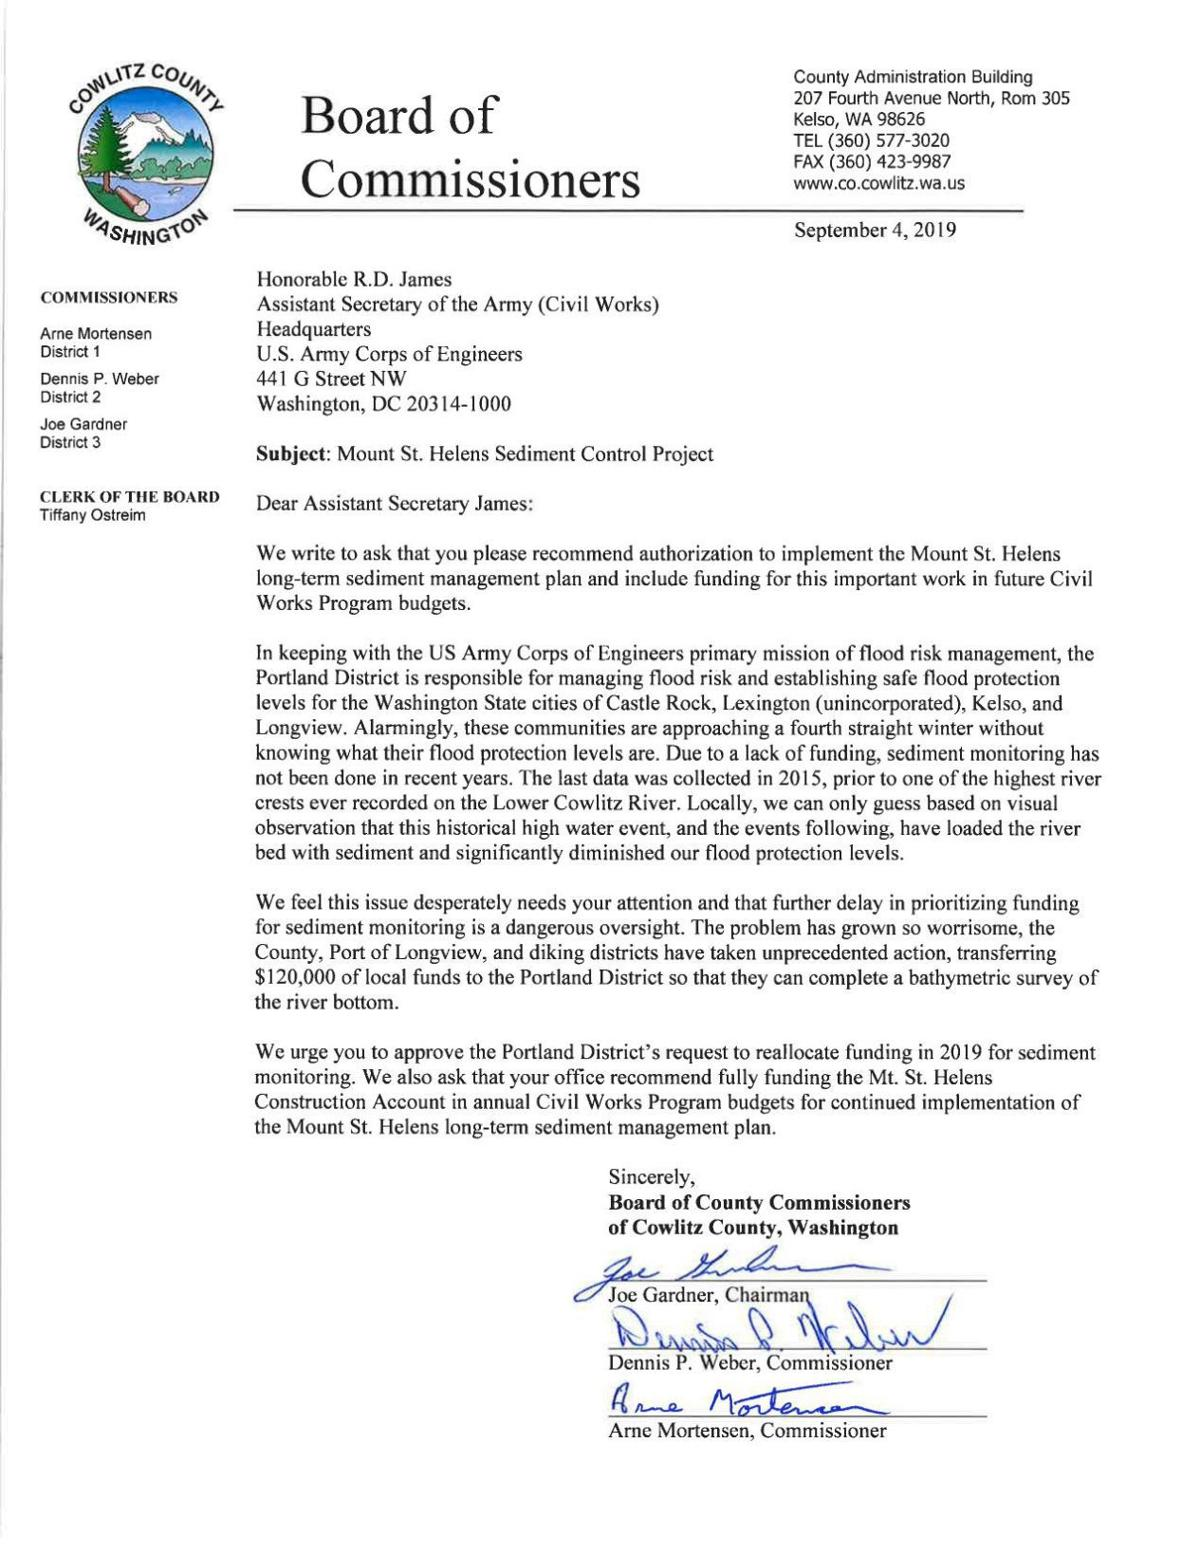 Cowlitz County commissioners letter to the U.S. Army Corps of Engineers